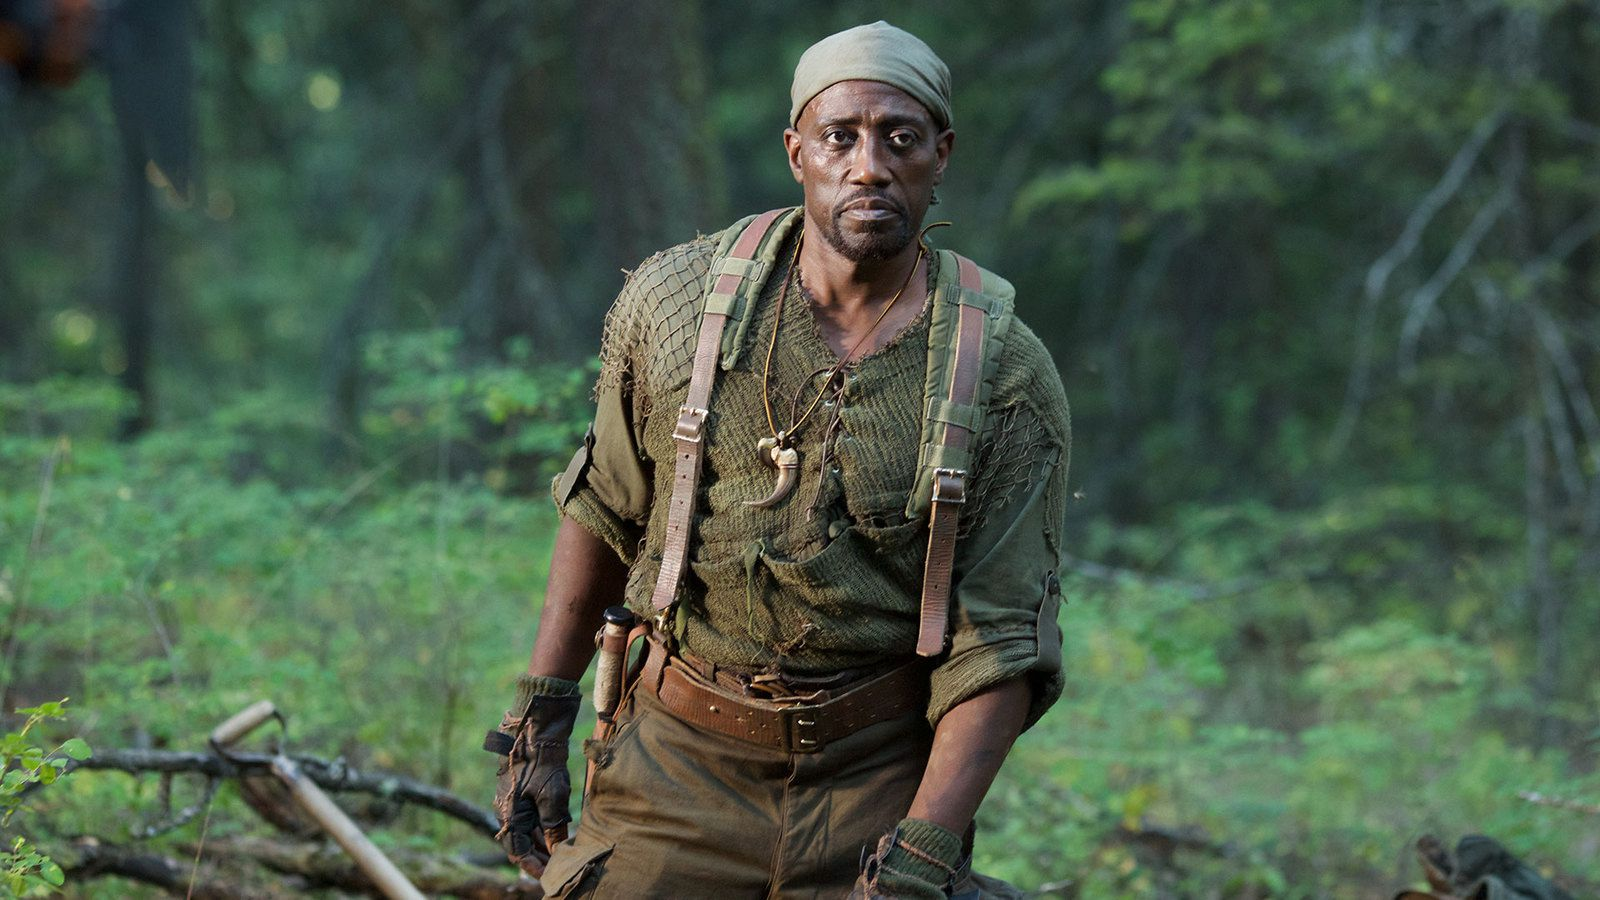 THE RECALL (BANDE-ANNONCE + 1 EXTRAIT) avec Wesley Snipes, RJ Mitte, Jedidiah Goodacre